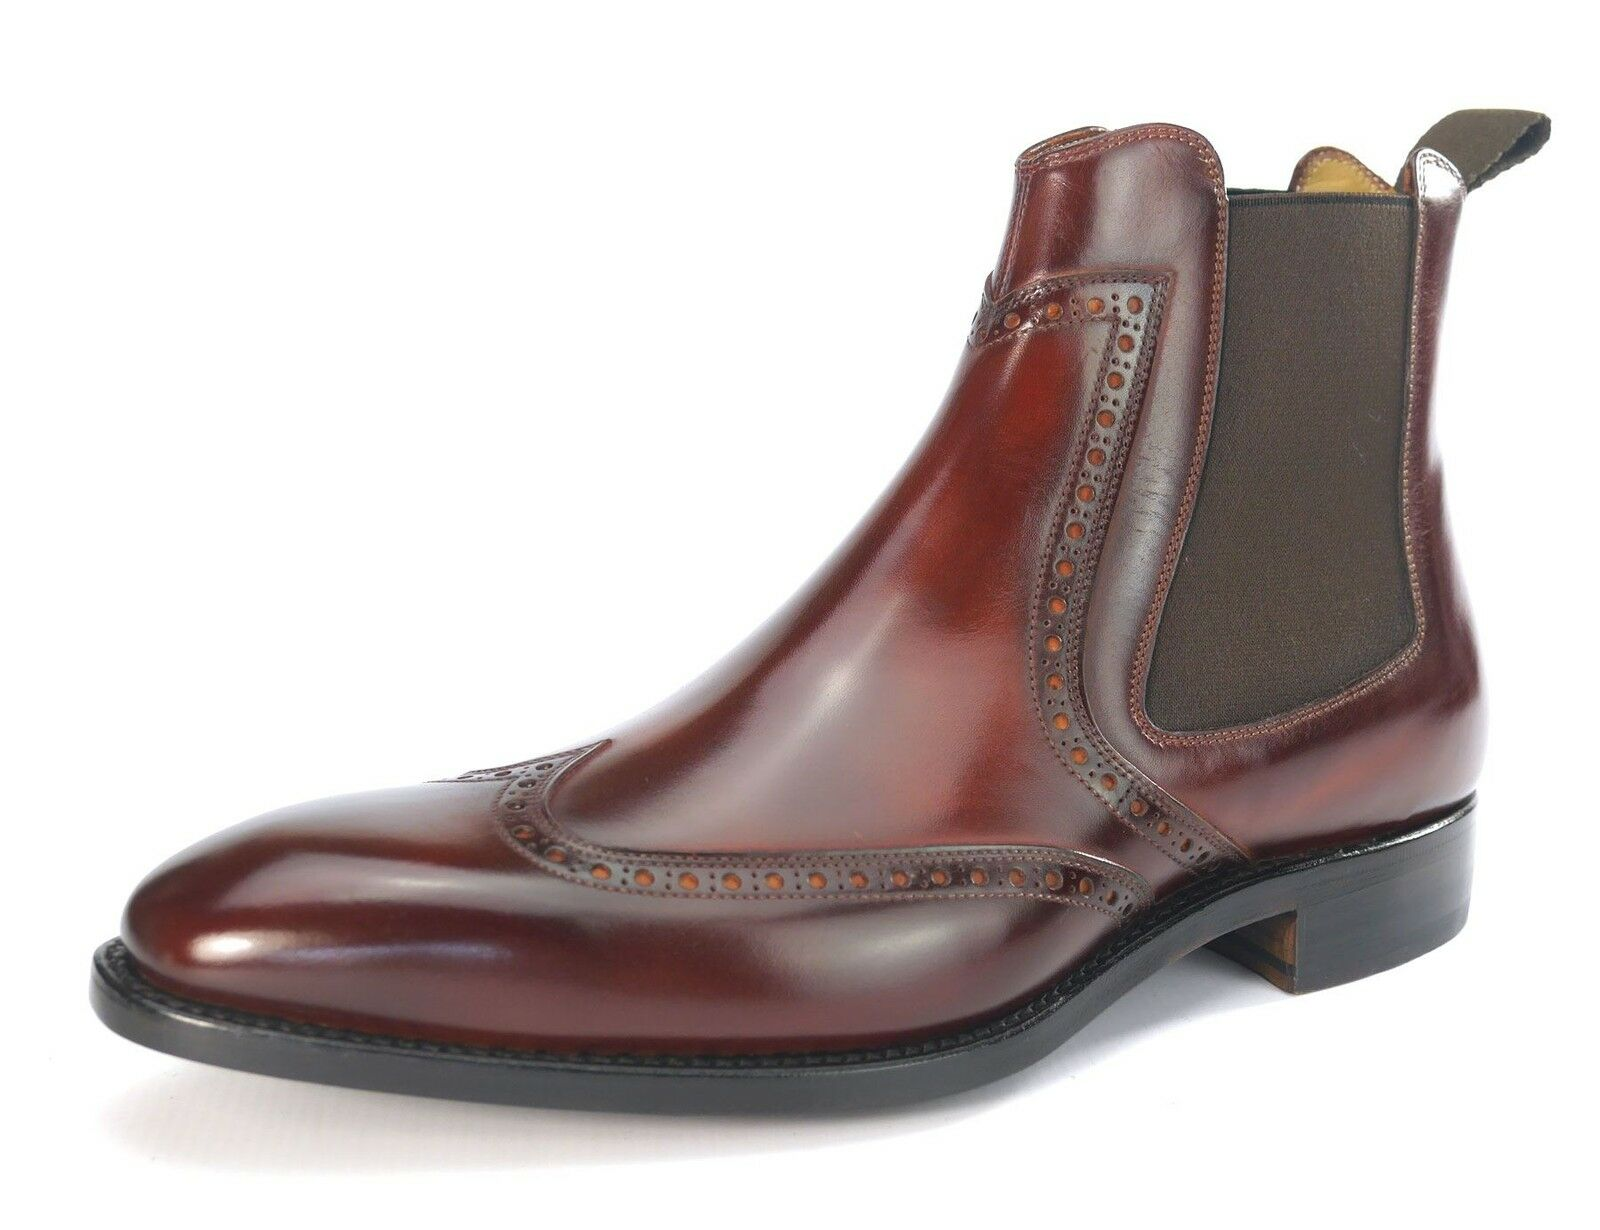 Carlos Santos All Leather Welted Handmade Mens Pull On Boots 7004